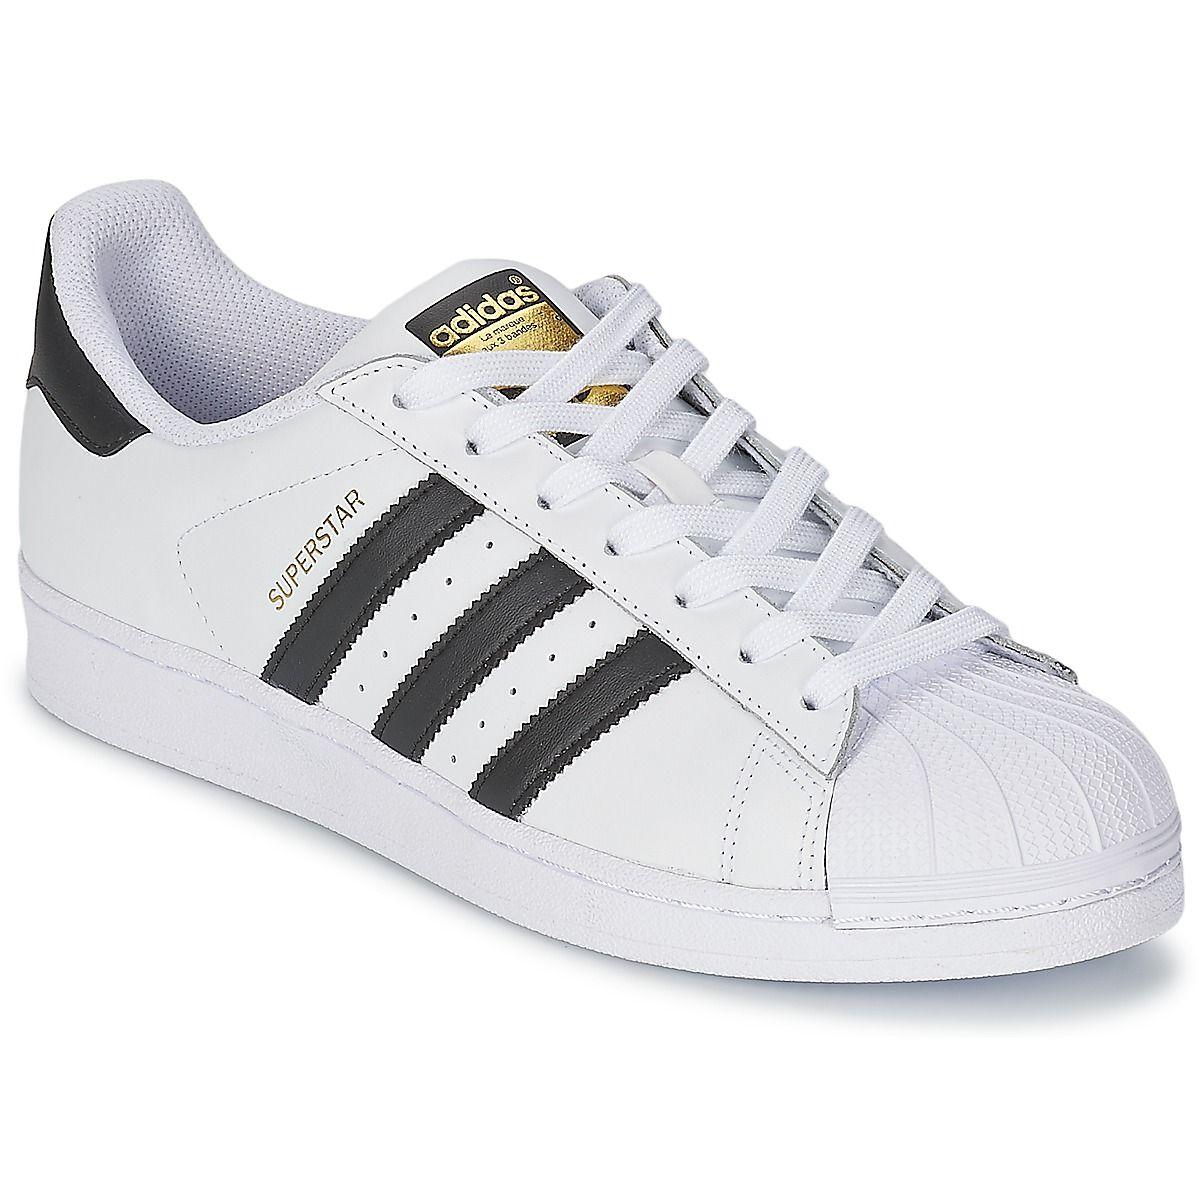 12ff87d7c92 Baskets basses Adidas Originals SUPERSTAR Blanc   Noir prix promo Baskets Femme  Spartoo 99.00 €